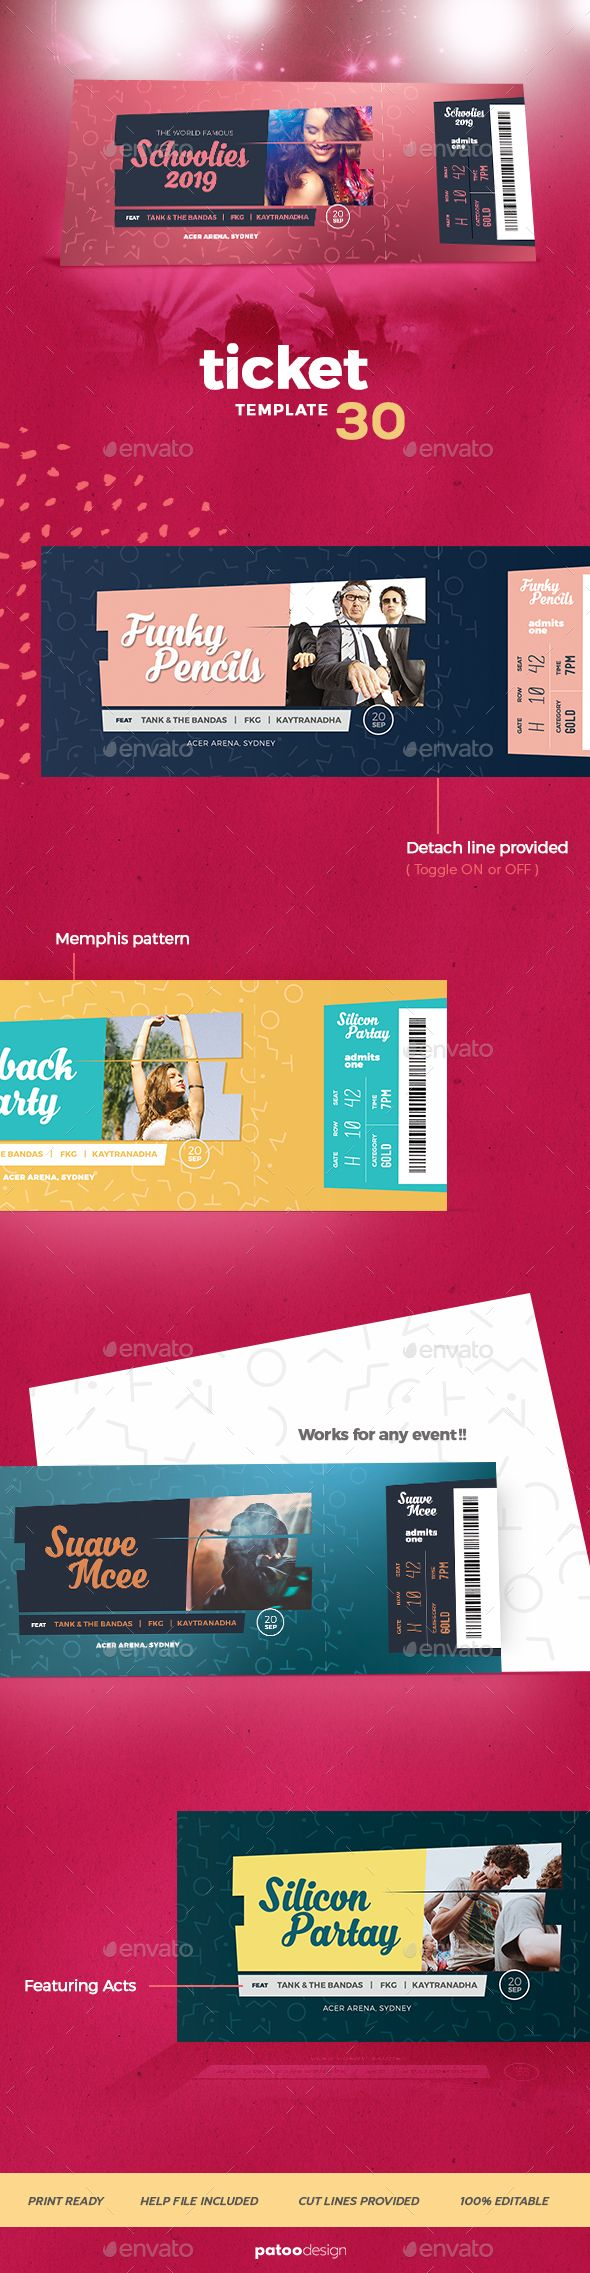 #Event #Tickets Template 30 - Miscellaneous #Print Templates Download here: https://graphicriver.net/item/event-tickets-template-30/20053489?ref=alena994